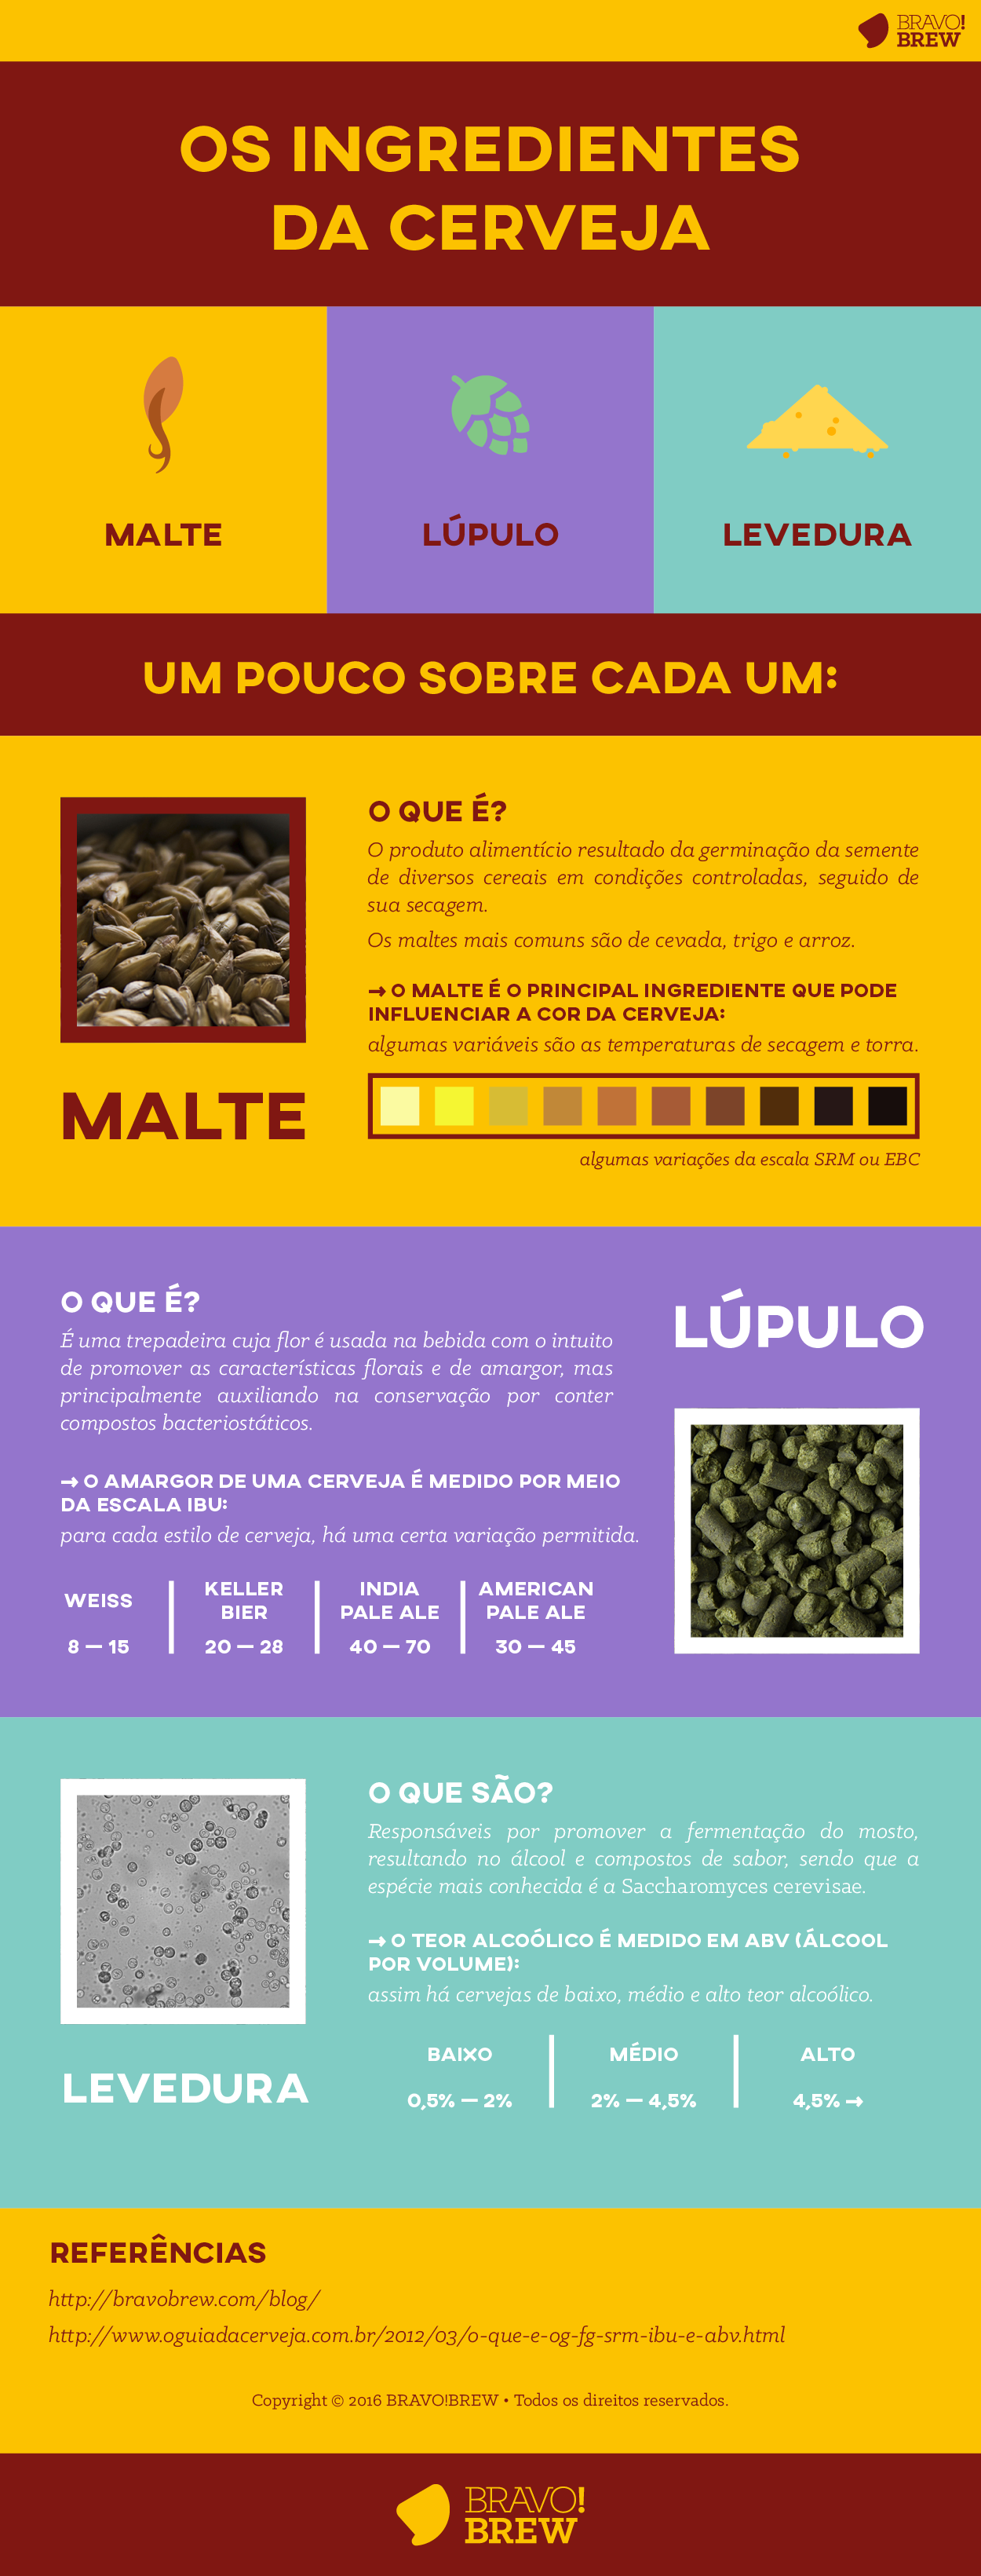 Infográfico Ingredientes